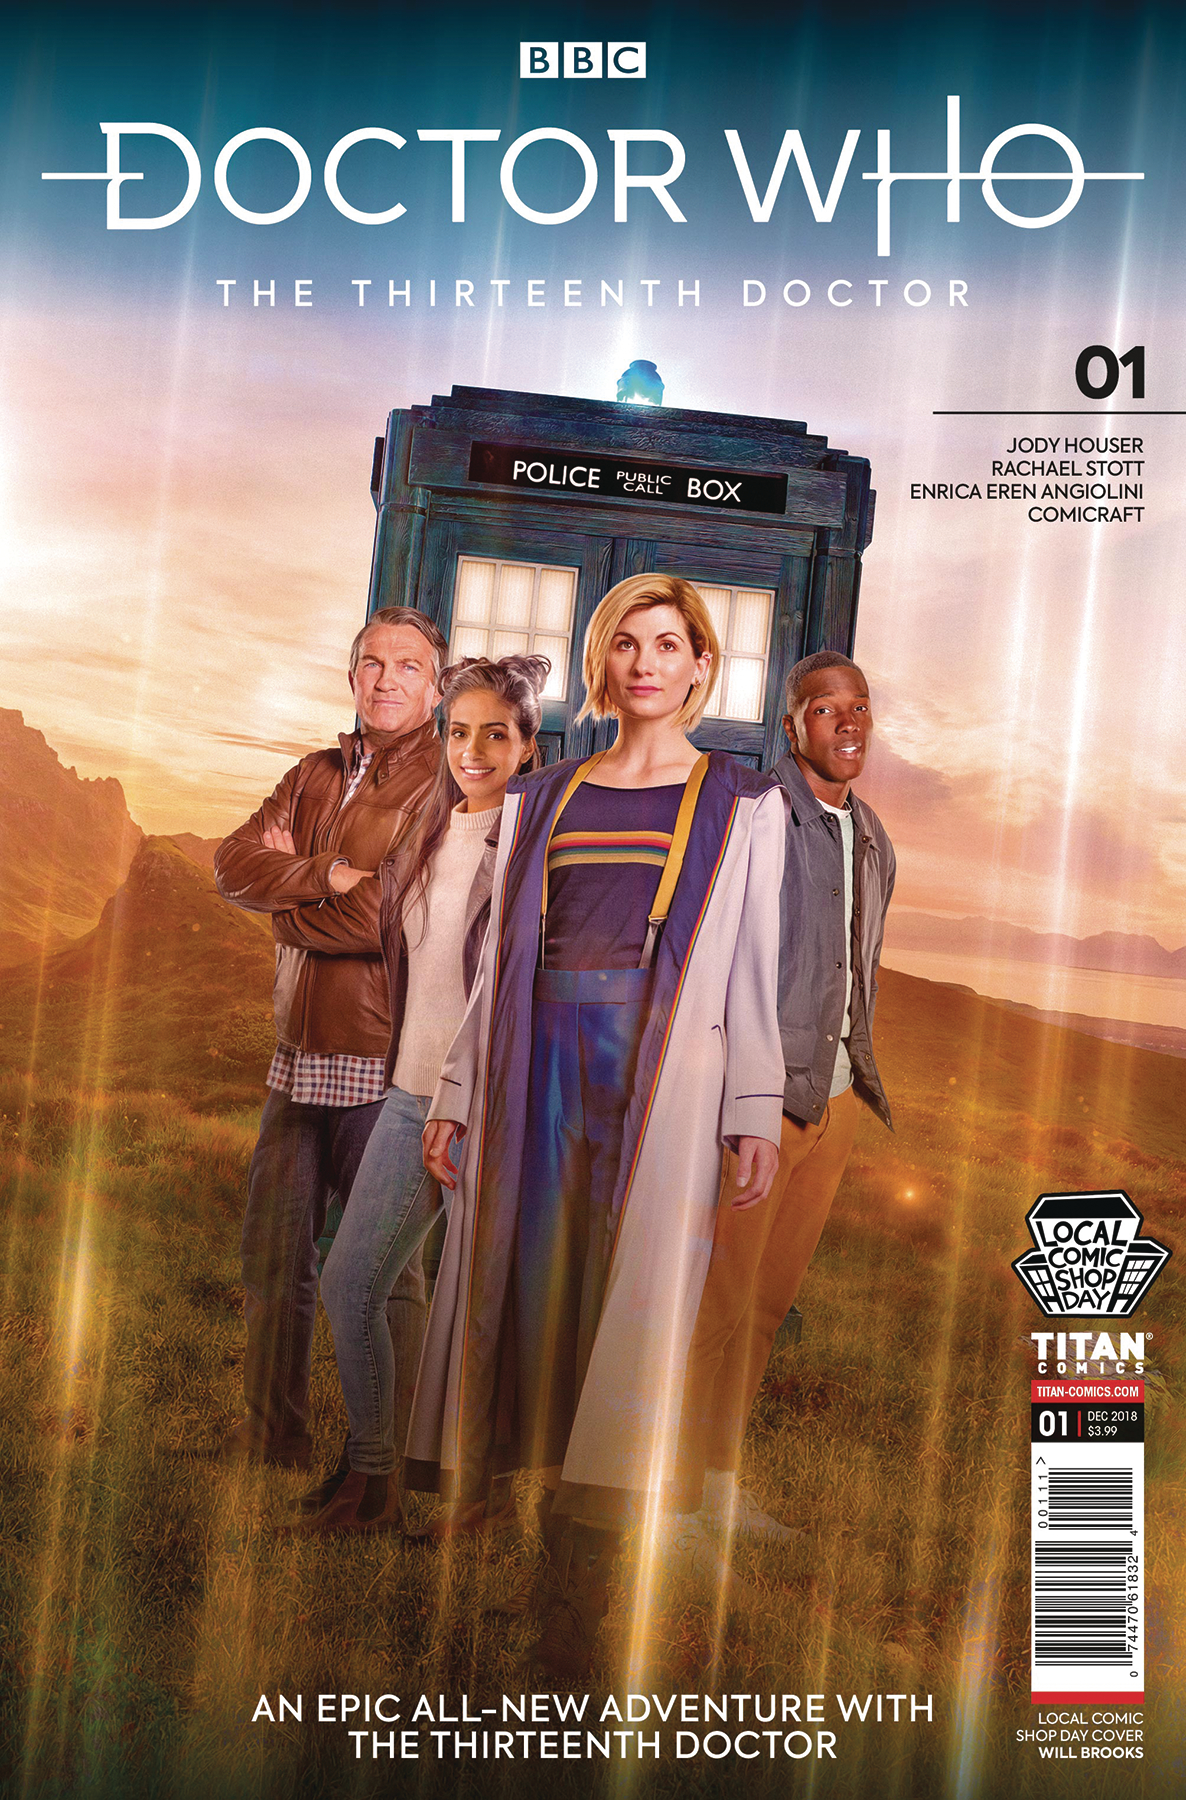 LCSD 2018 DOCTOR WHO 13TH DOCTOR #1 SET